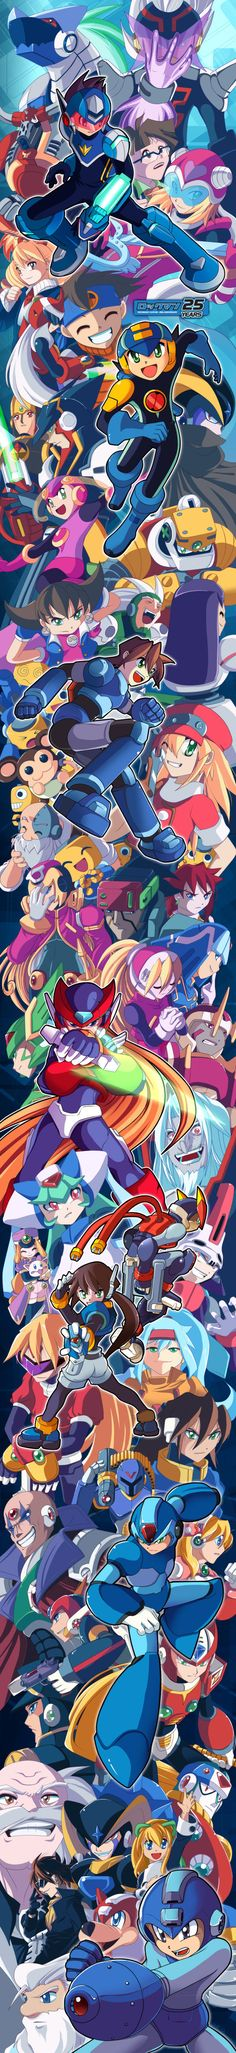 For the years you've always entertained me, inspired me, and gave me joy. Thanks MegaMan, 25 Years of MegaMan by =suzuran on deviantART